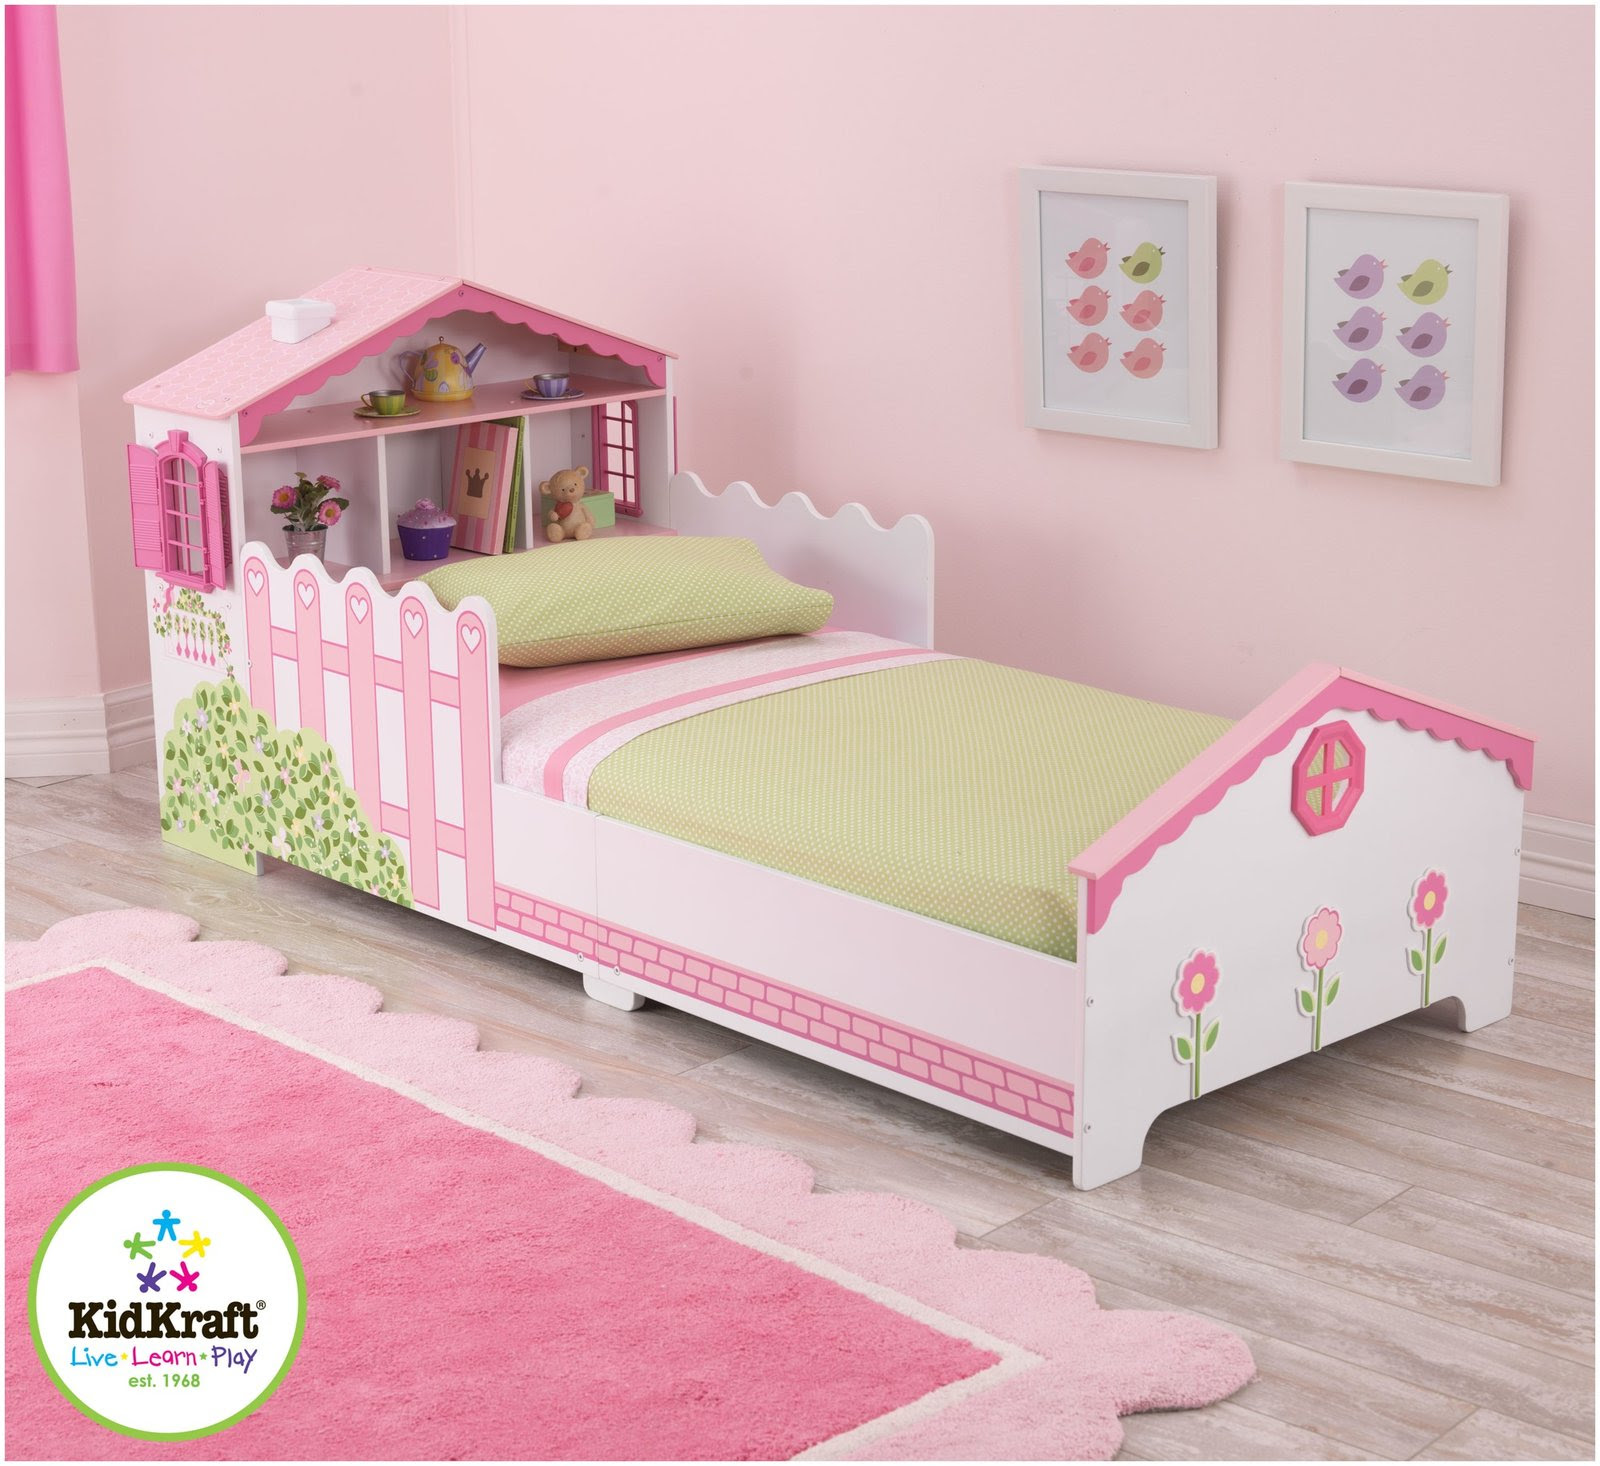 Dollhouse toddler bed by kidkraft with wood construction and painted finishing and bookshelf headboard surrounded with pink color